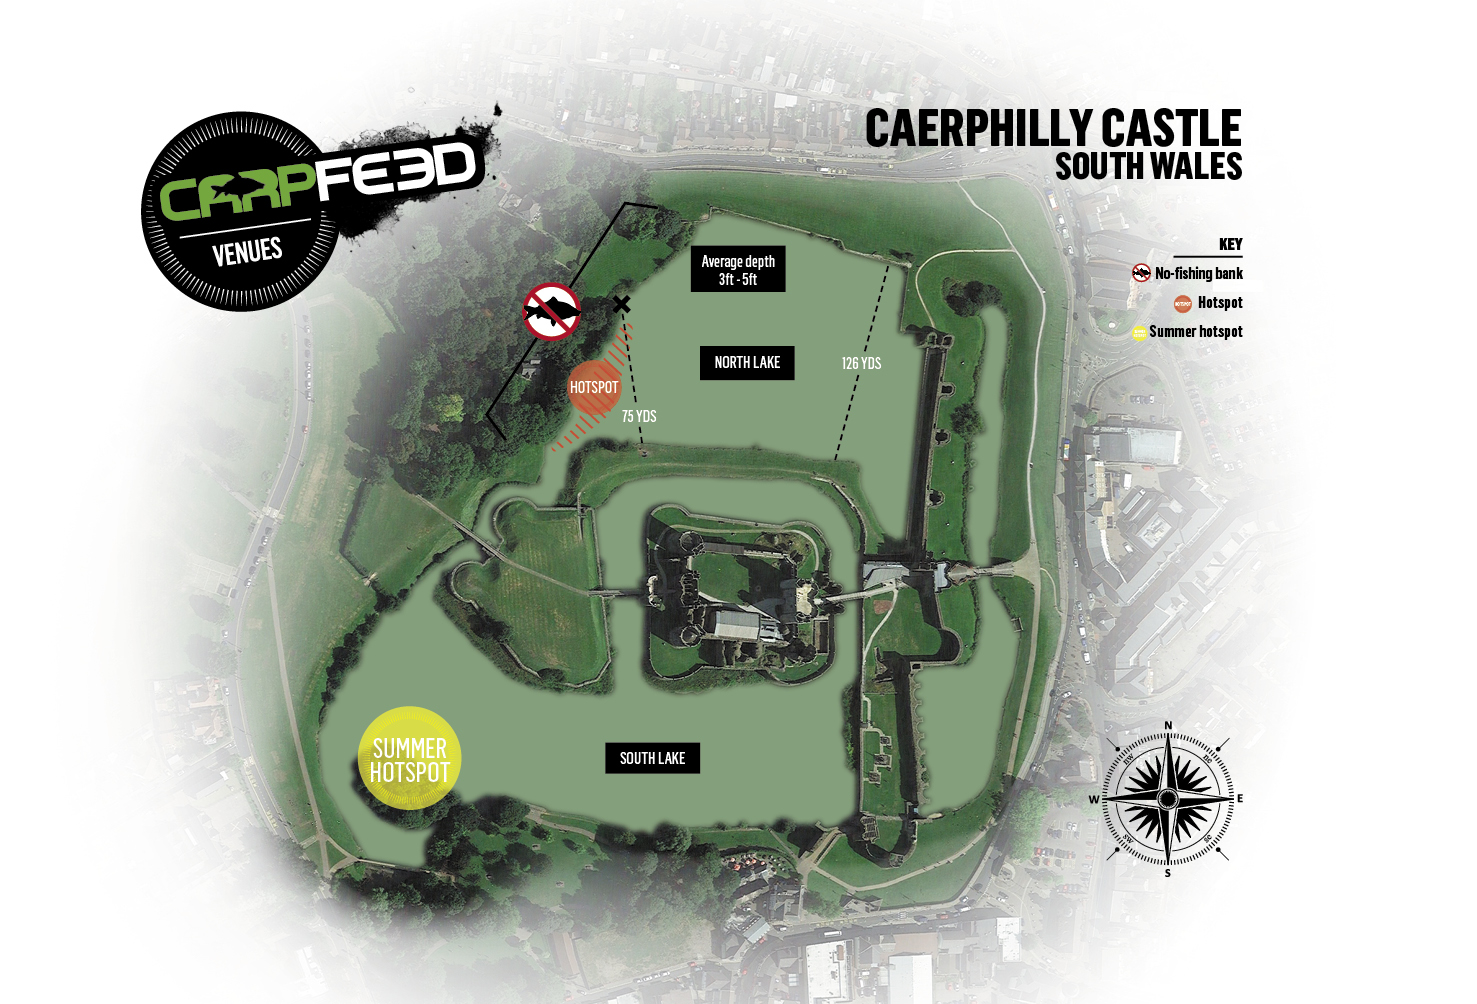 CLICK THE MAP FOR OUR FULL GUIDE TO CAERPHILLY CASTLE